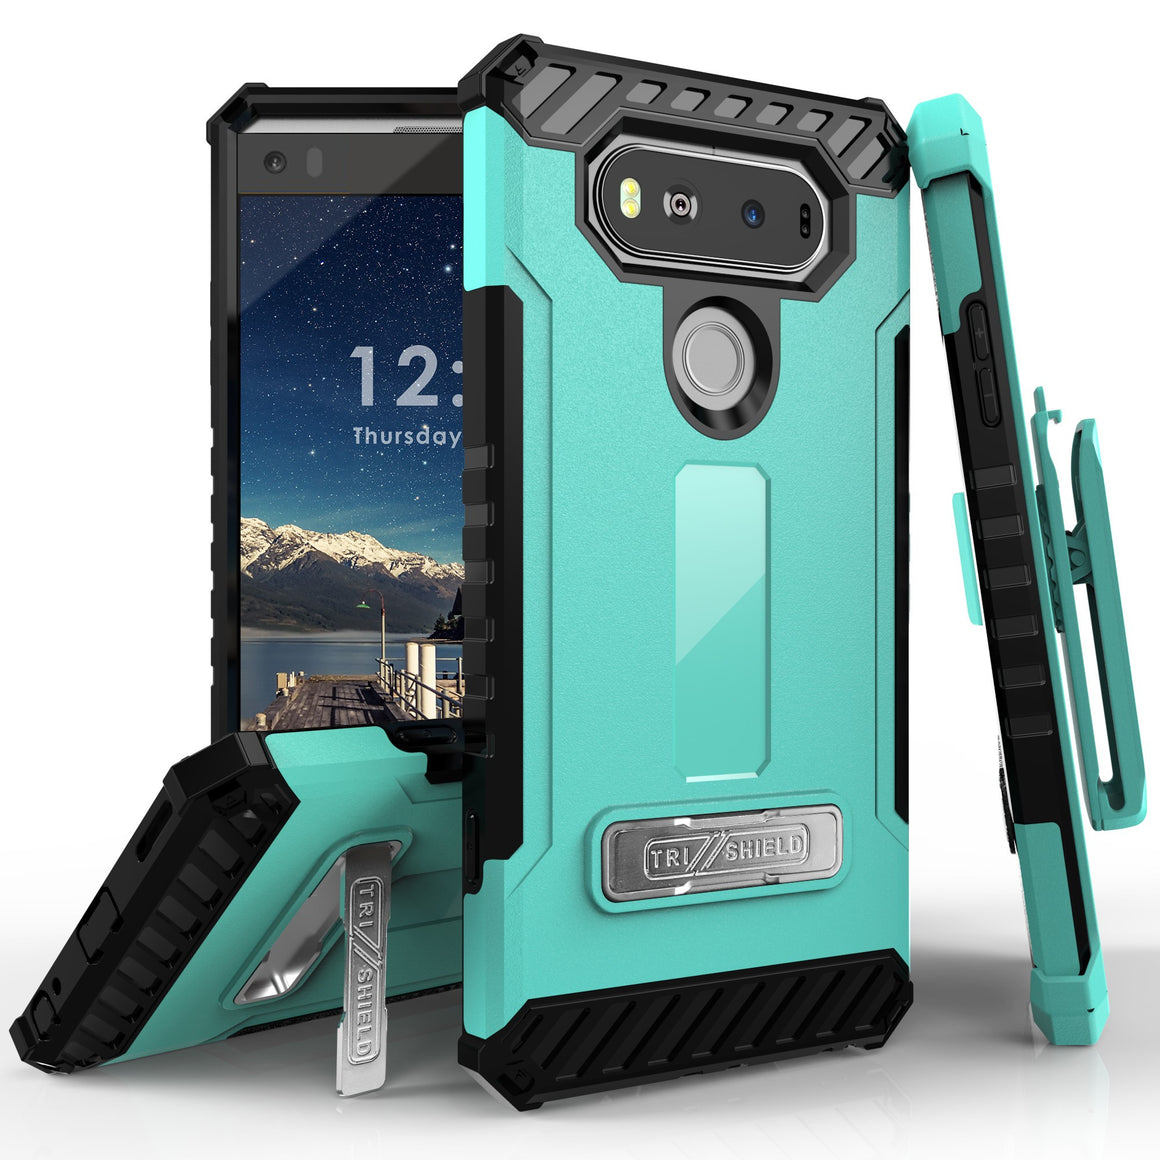 Tri Shield Combo For LG V20 H910/ H918/ LS997/ VS995 White/Light Blue TPU Case,Belt Clip Holster,Kickstand,Card Slot